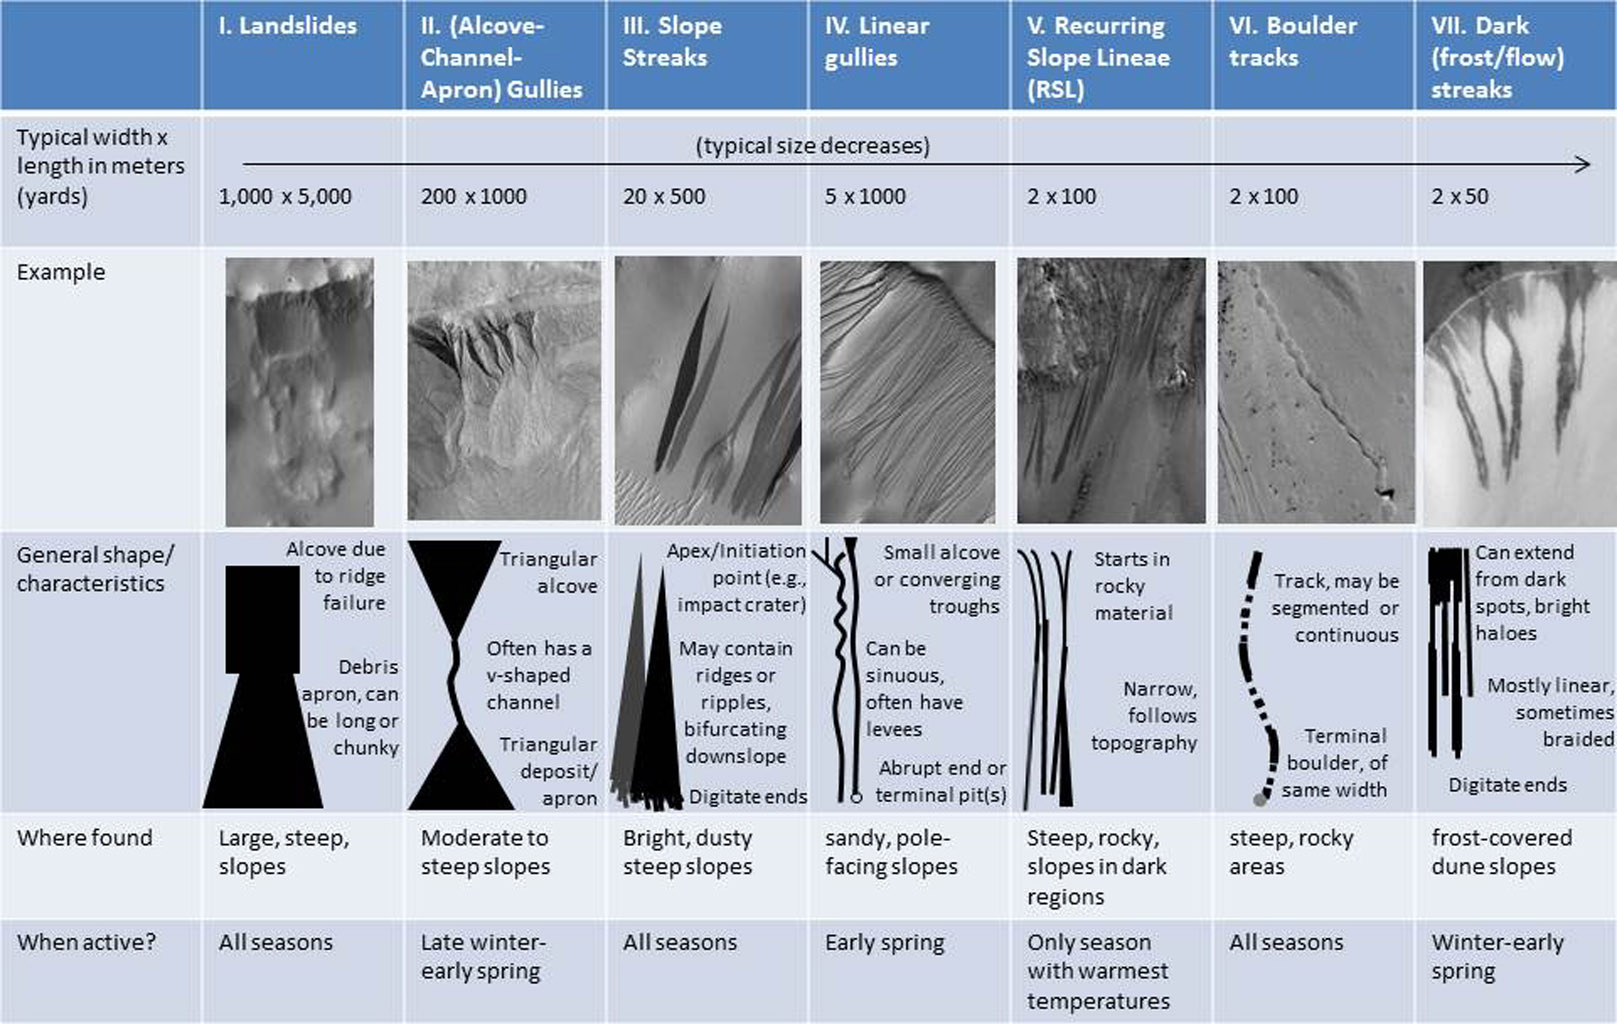 As on the Earth, many processes can move material down a Martian slope. This graphic compares seven different types of features observed on Mars that appear to result from material flowing or sliding or rolling down slopes.